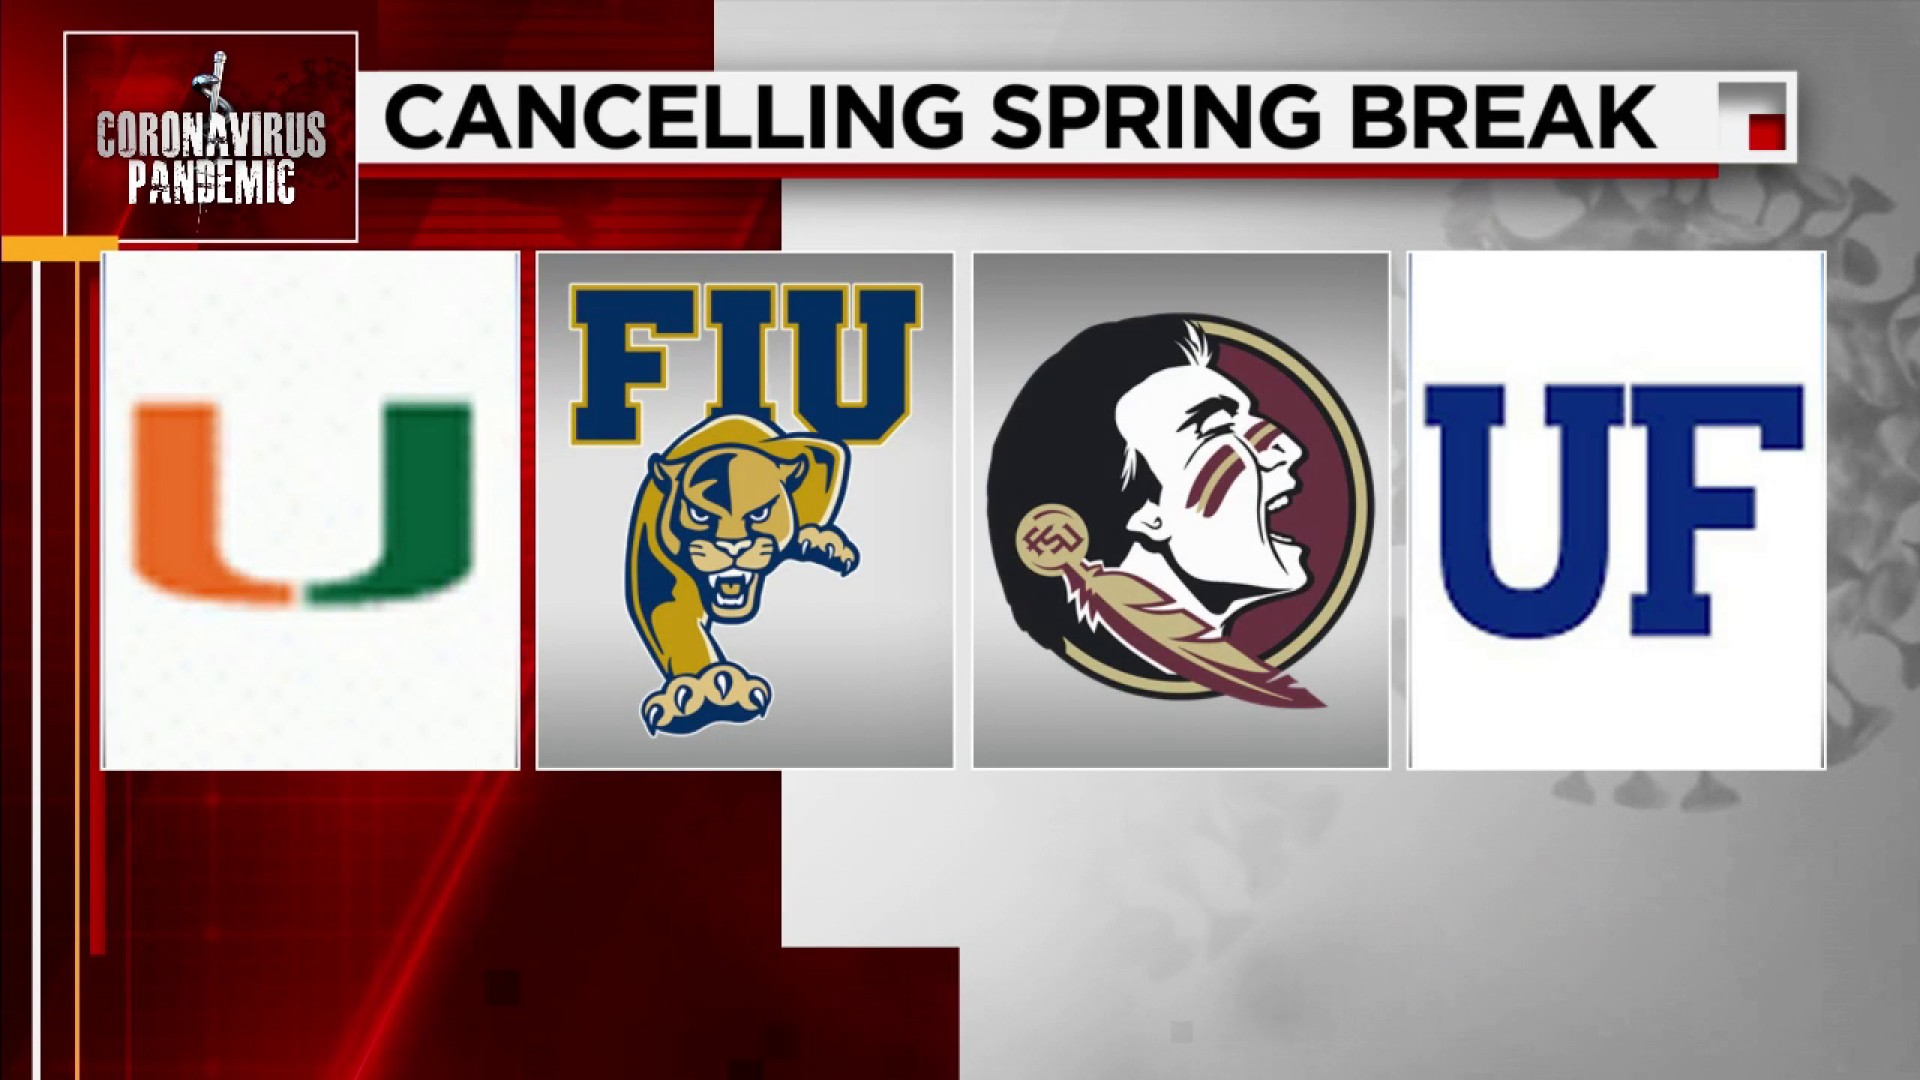 Uf 2021 Spring Calendar UM and FIU join UF and FSU on Spring Break 2021 cancellation